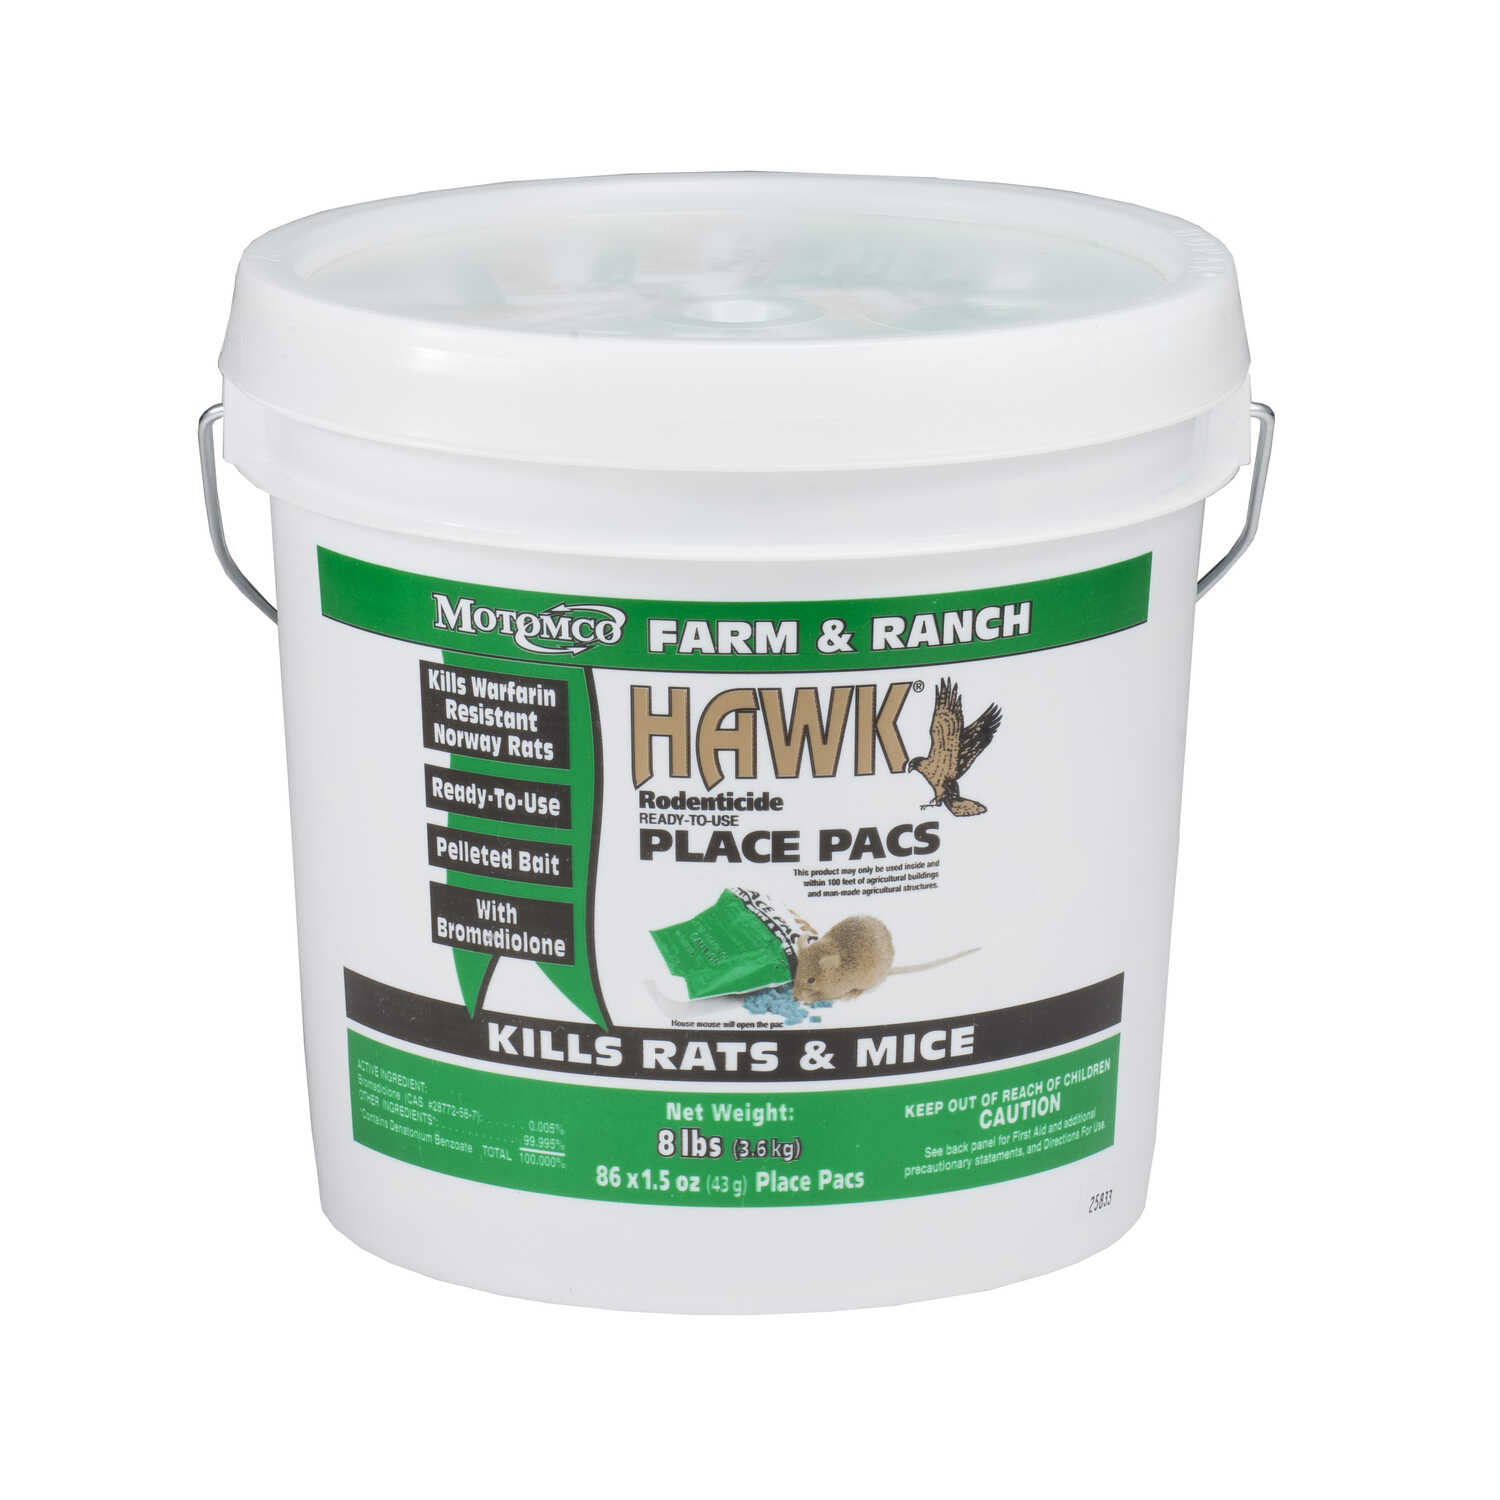 Motomco  Hawk  For Mice/Rats Pest Control  8